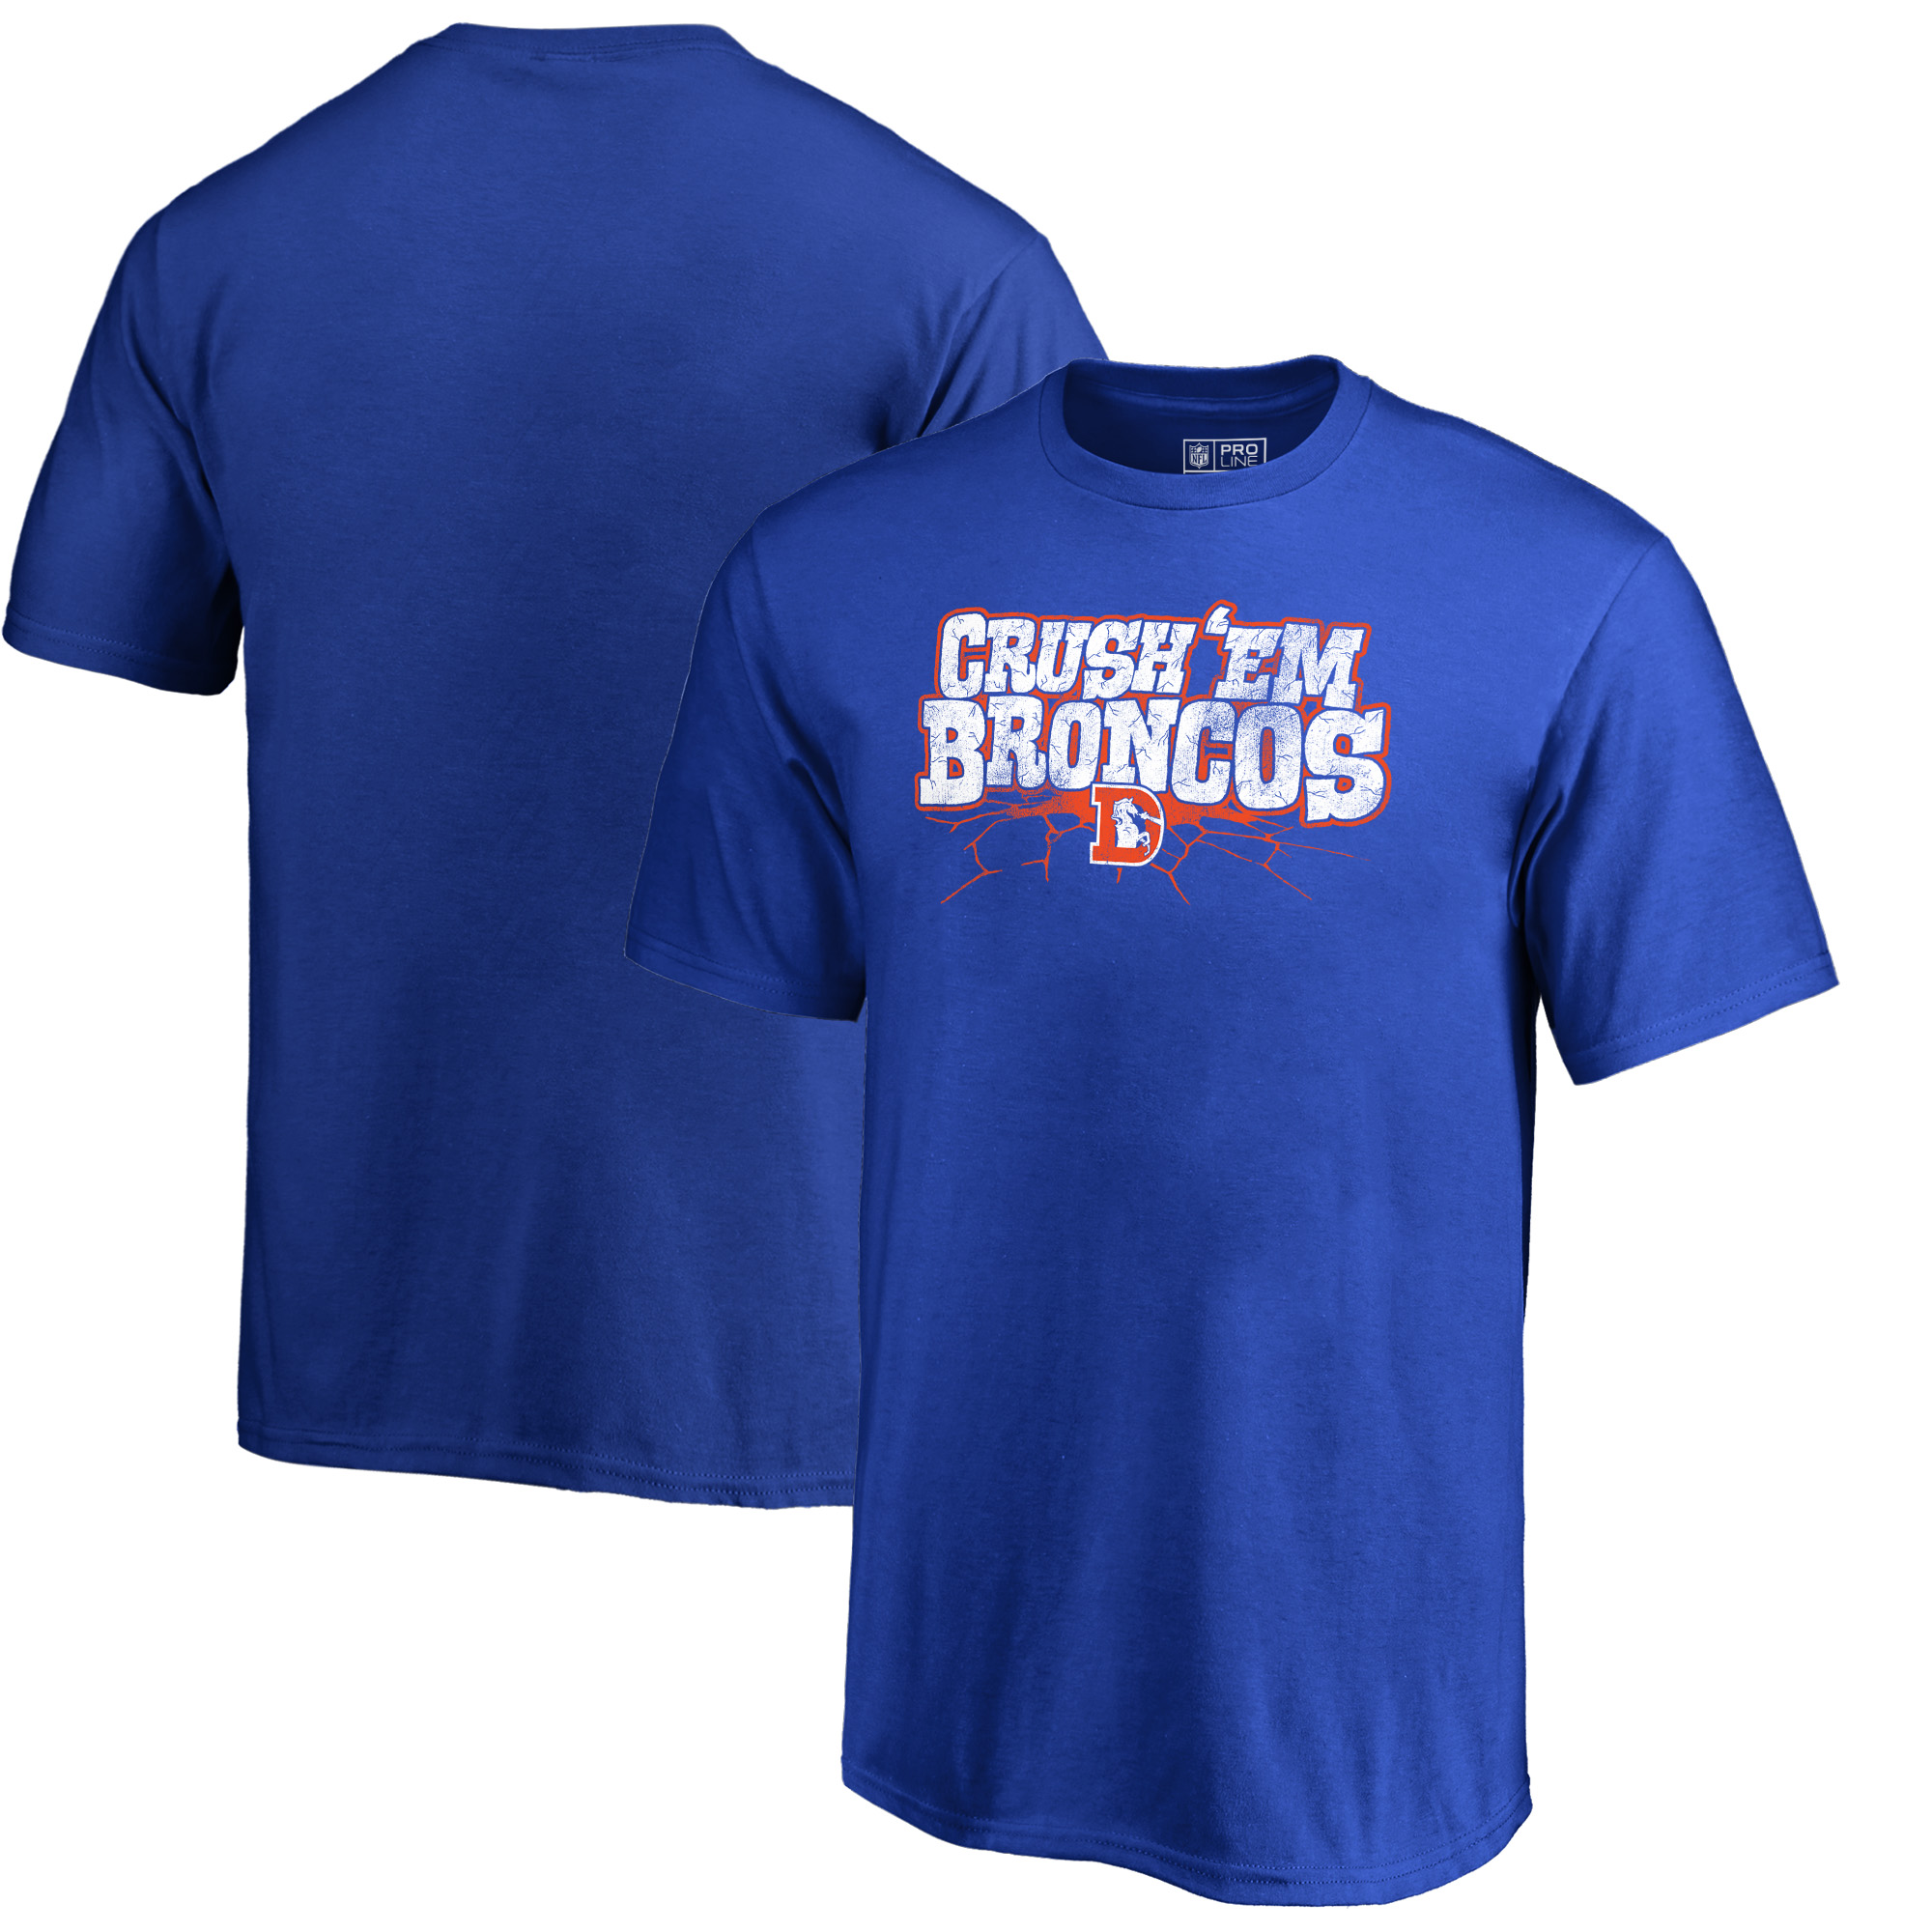 Denver Broncos NFL Pro Line by Fanatics Branded Youth Hometown Collection T-Shirt - Royal